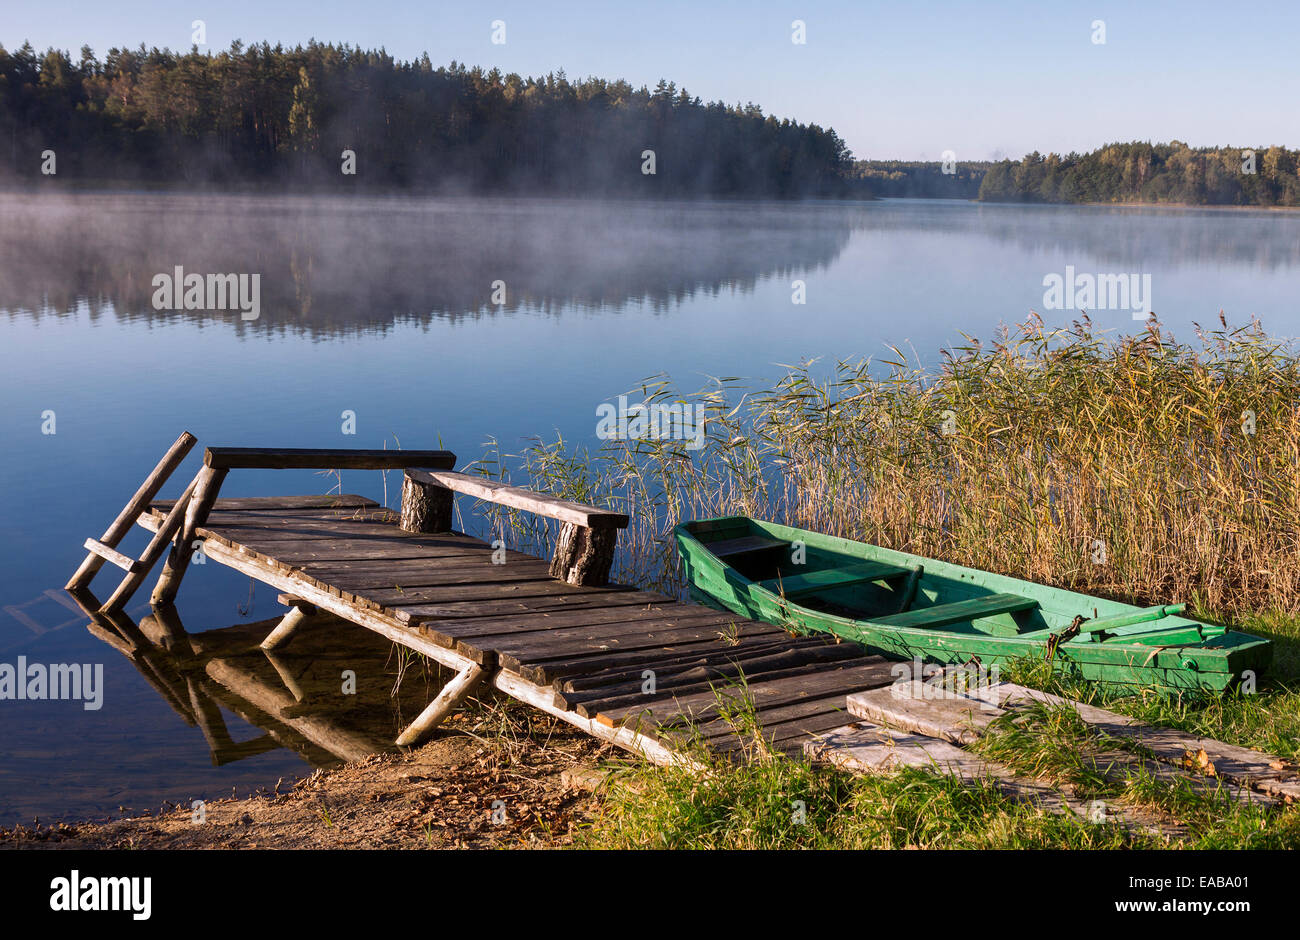 Old wooden fishing boat and old bridge on the foggy lake in morning hour - Stock Image